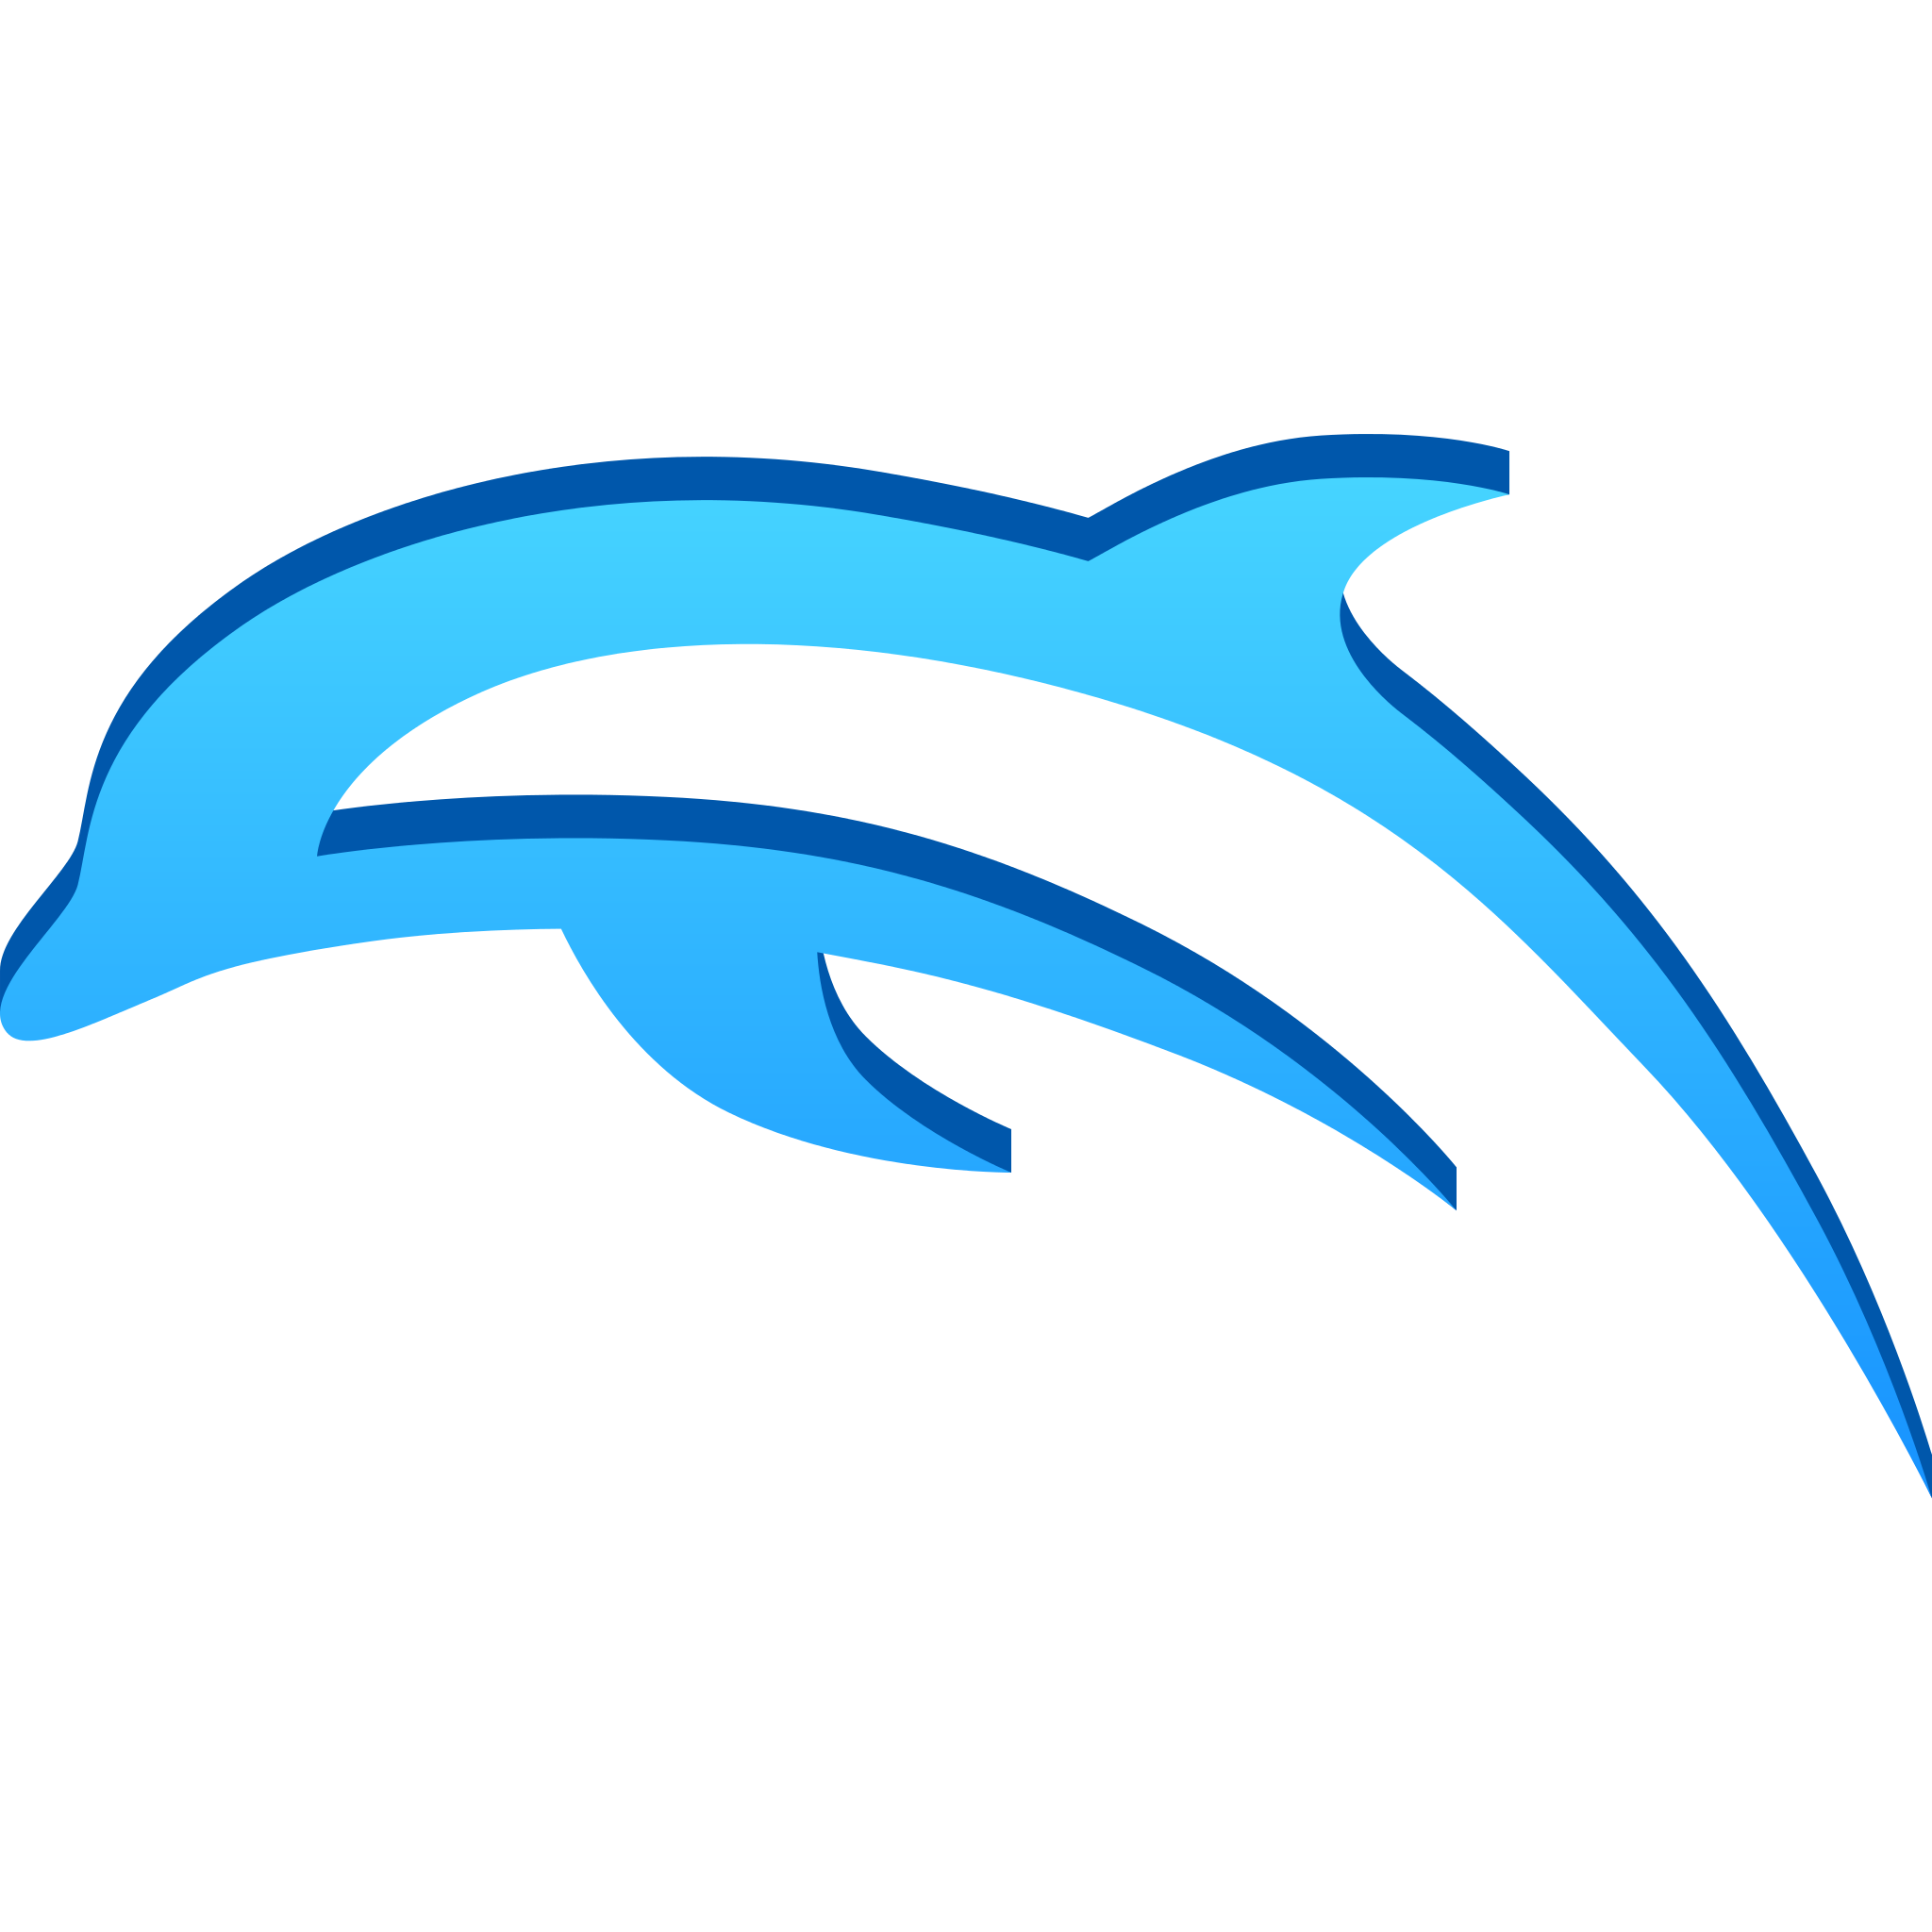 Clipart waves dolphin. Emulator on twitter this